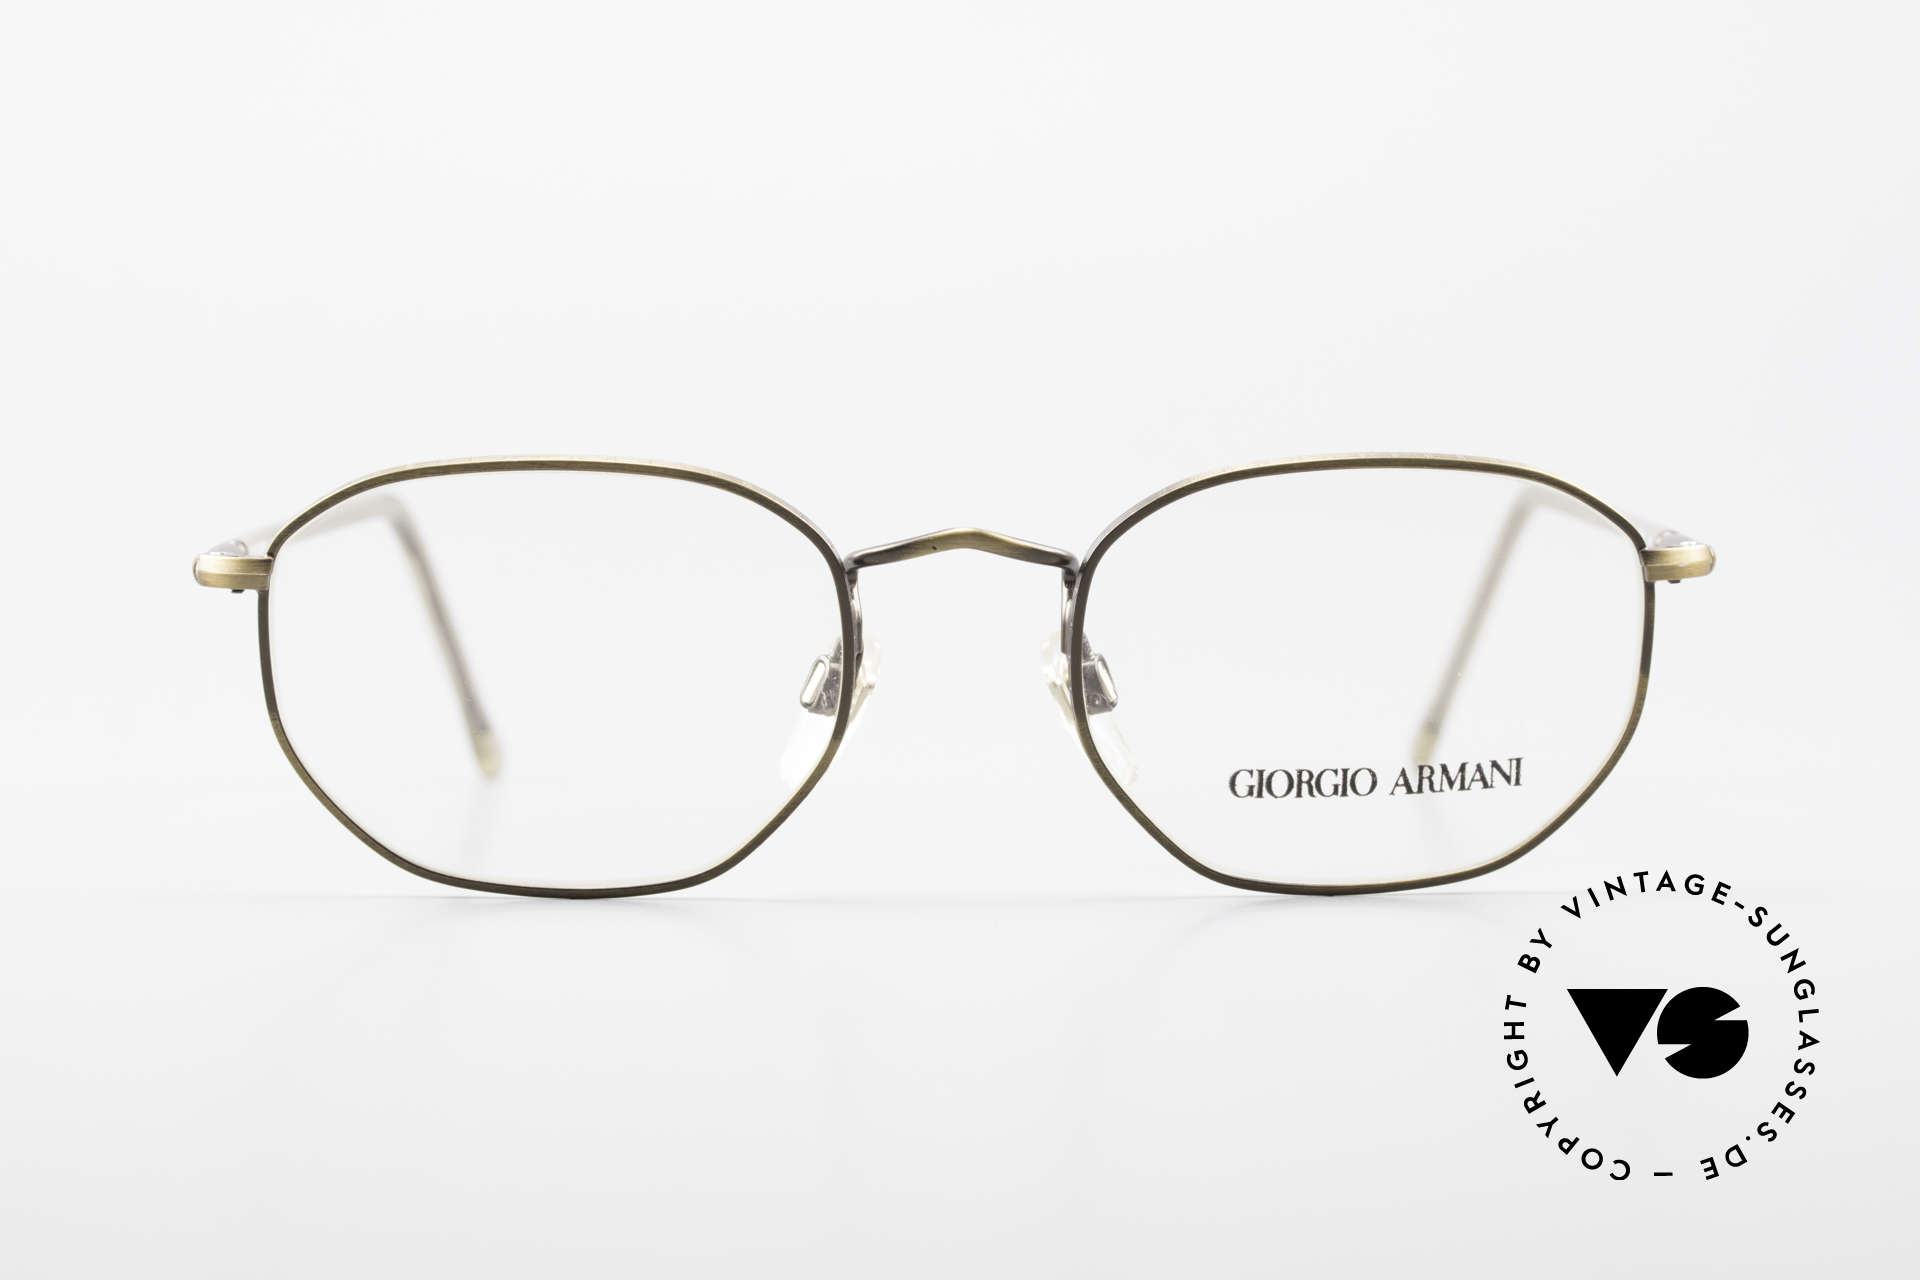 Giorgio Armani 187 Classic Men's Eyeglasses 90's, classic gentlemen's frame (rather a SMALL size 50/19), Made for Men